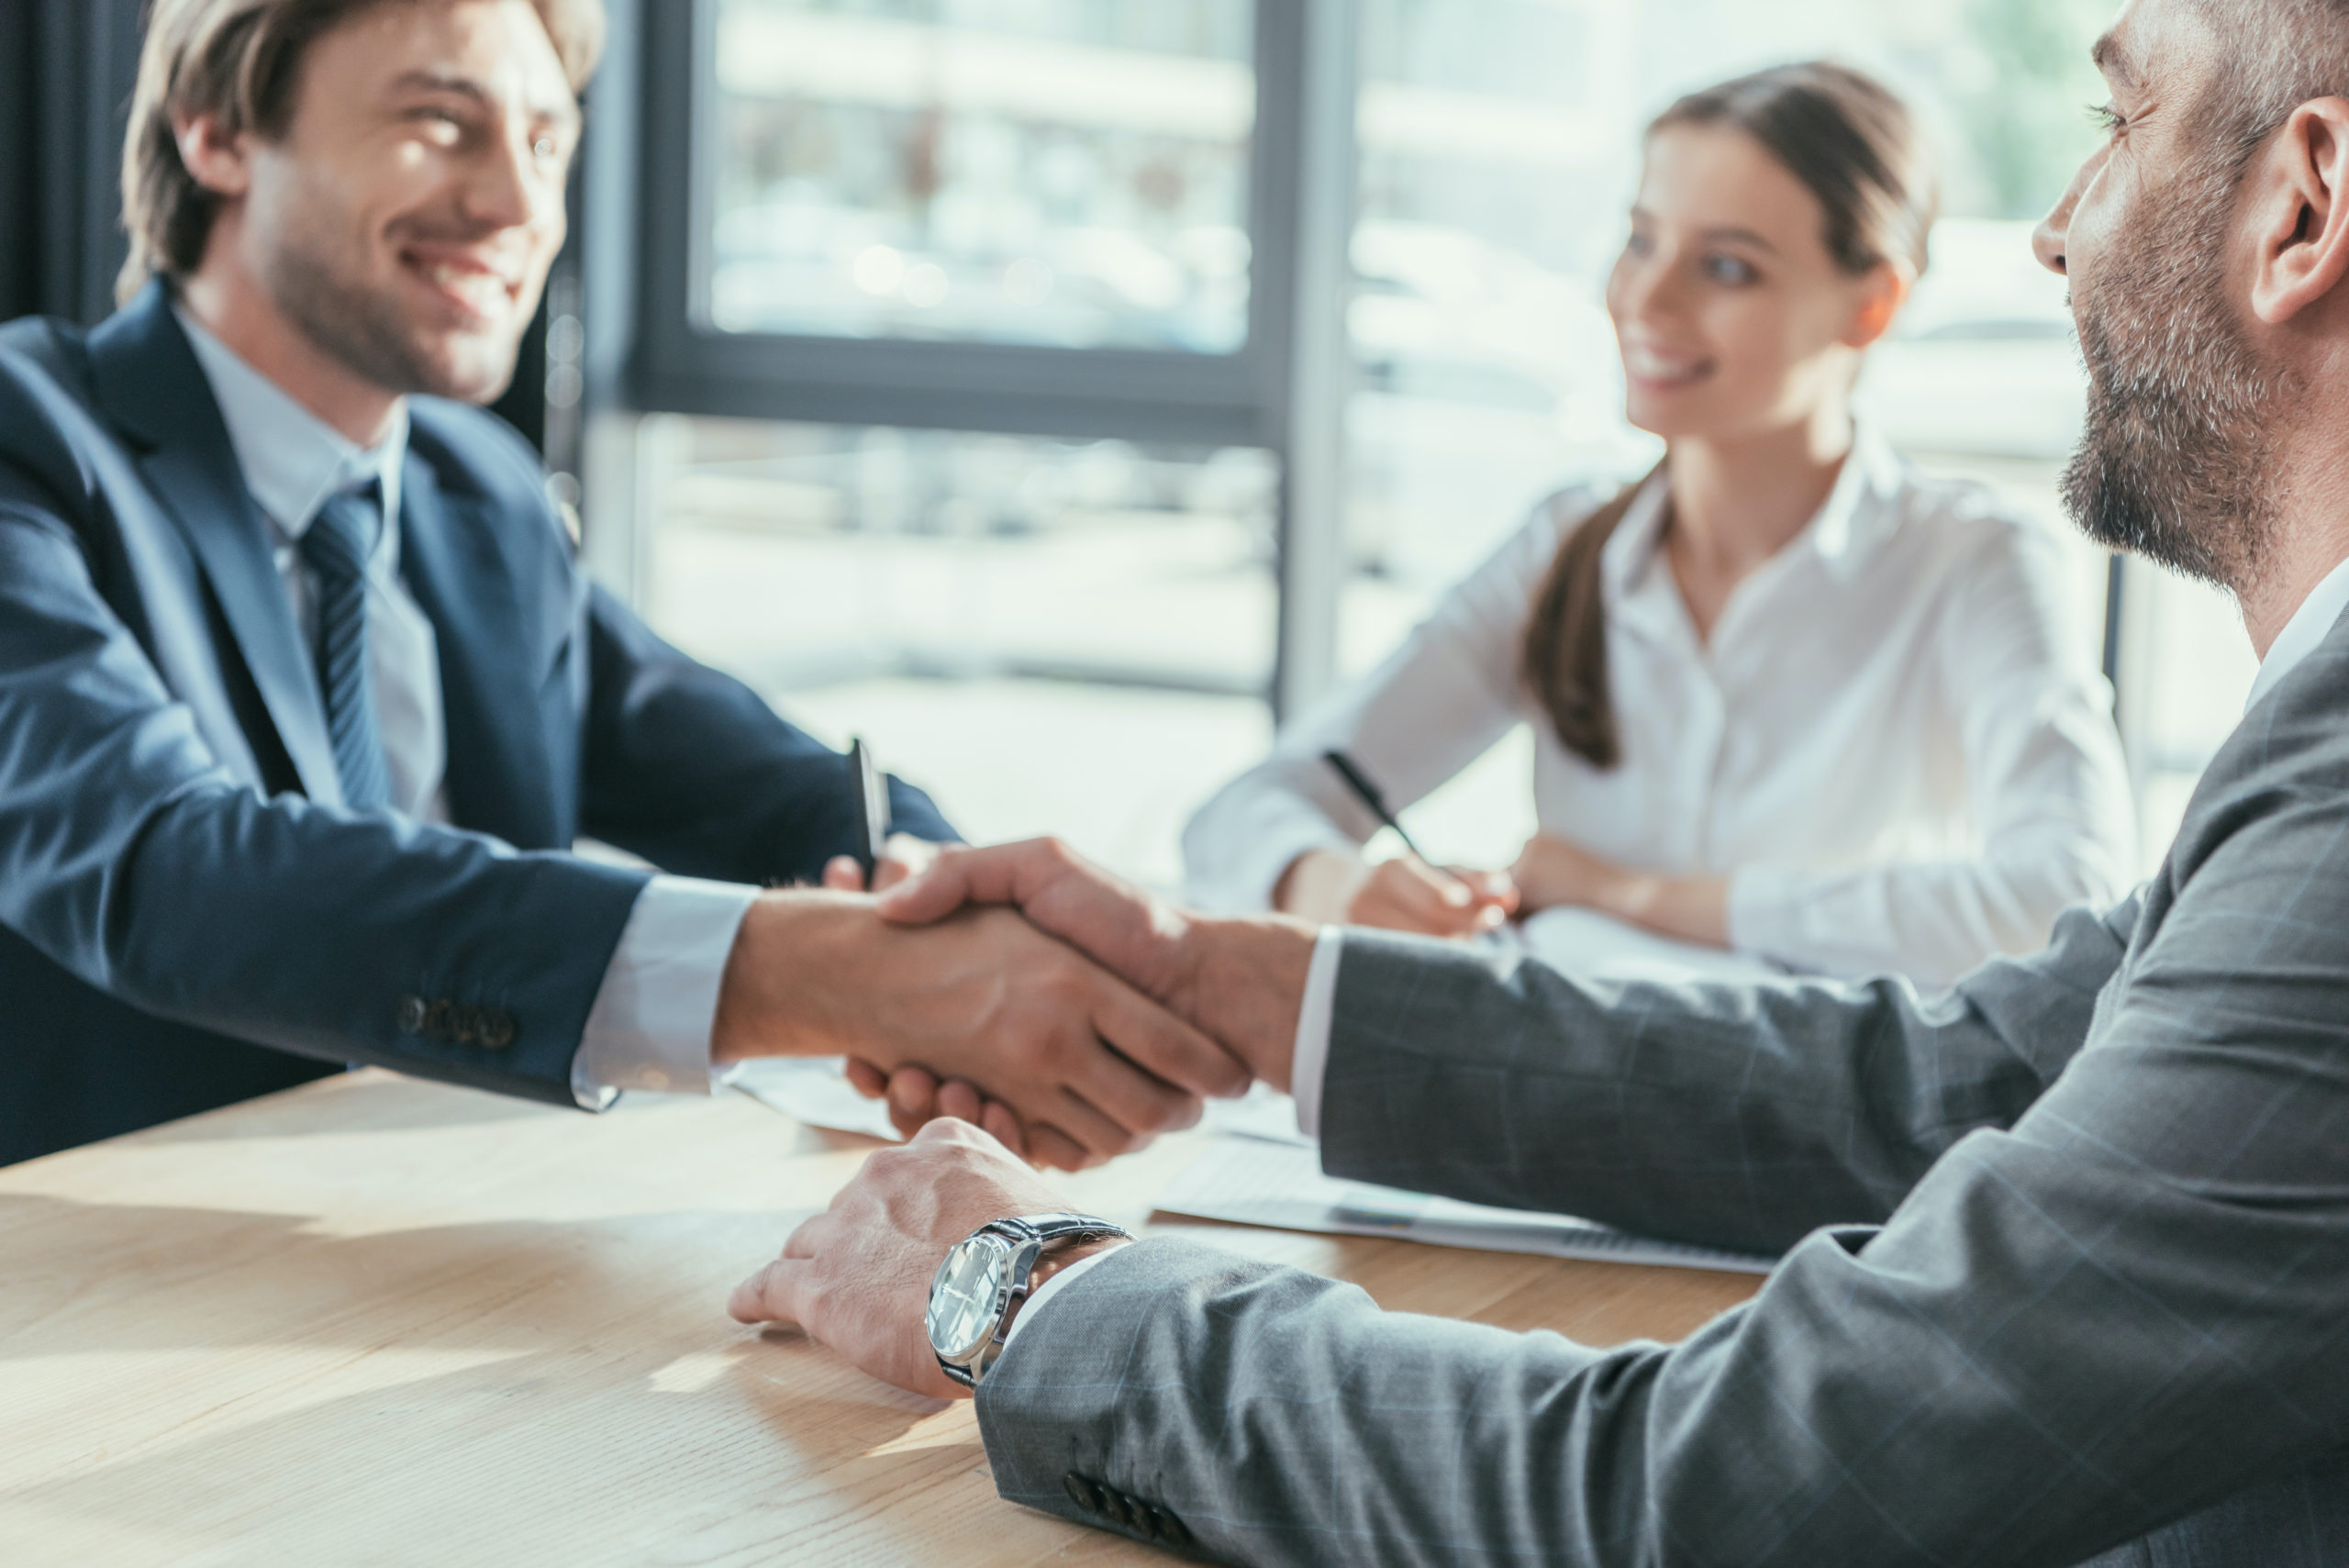 The 7 Steps to Negotiating PPO Fees